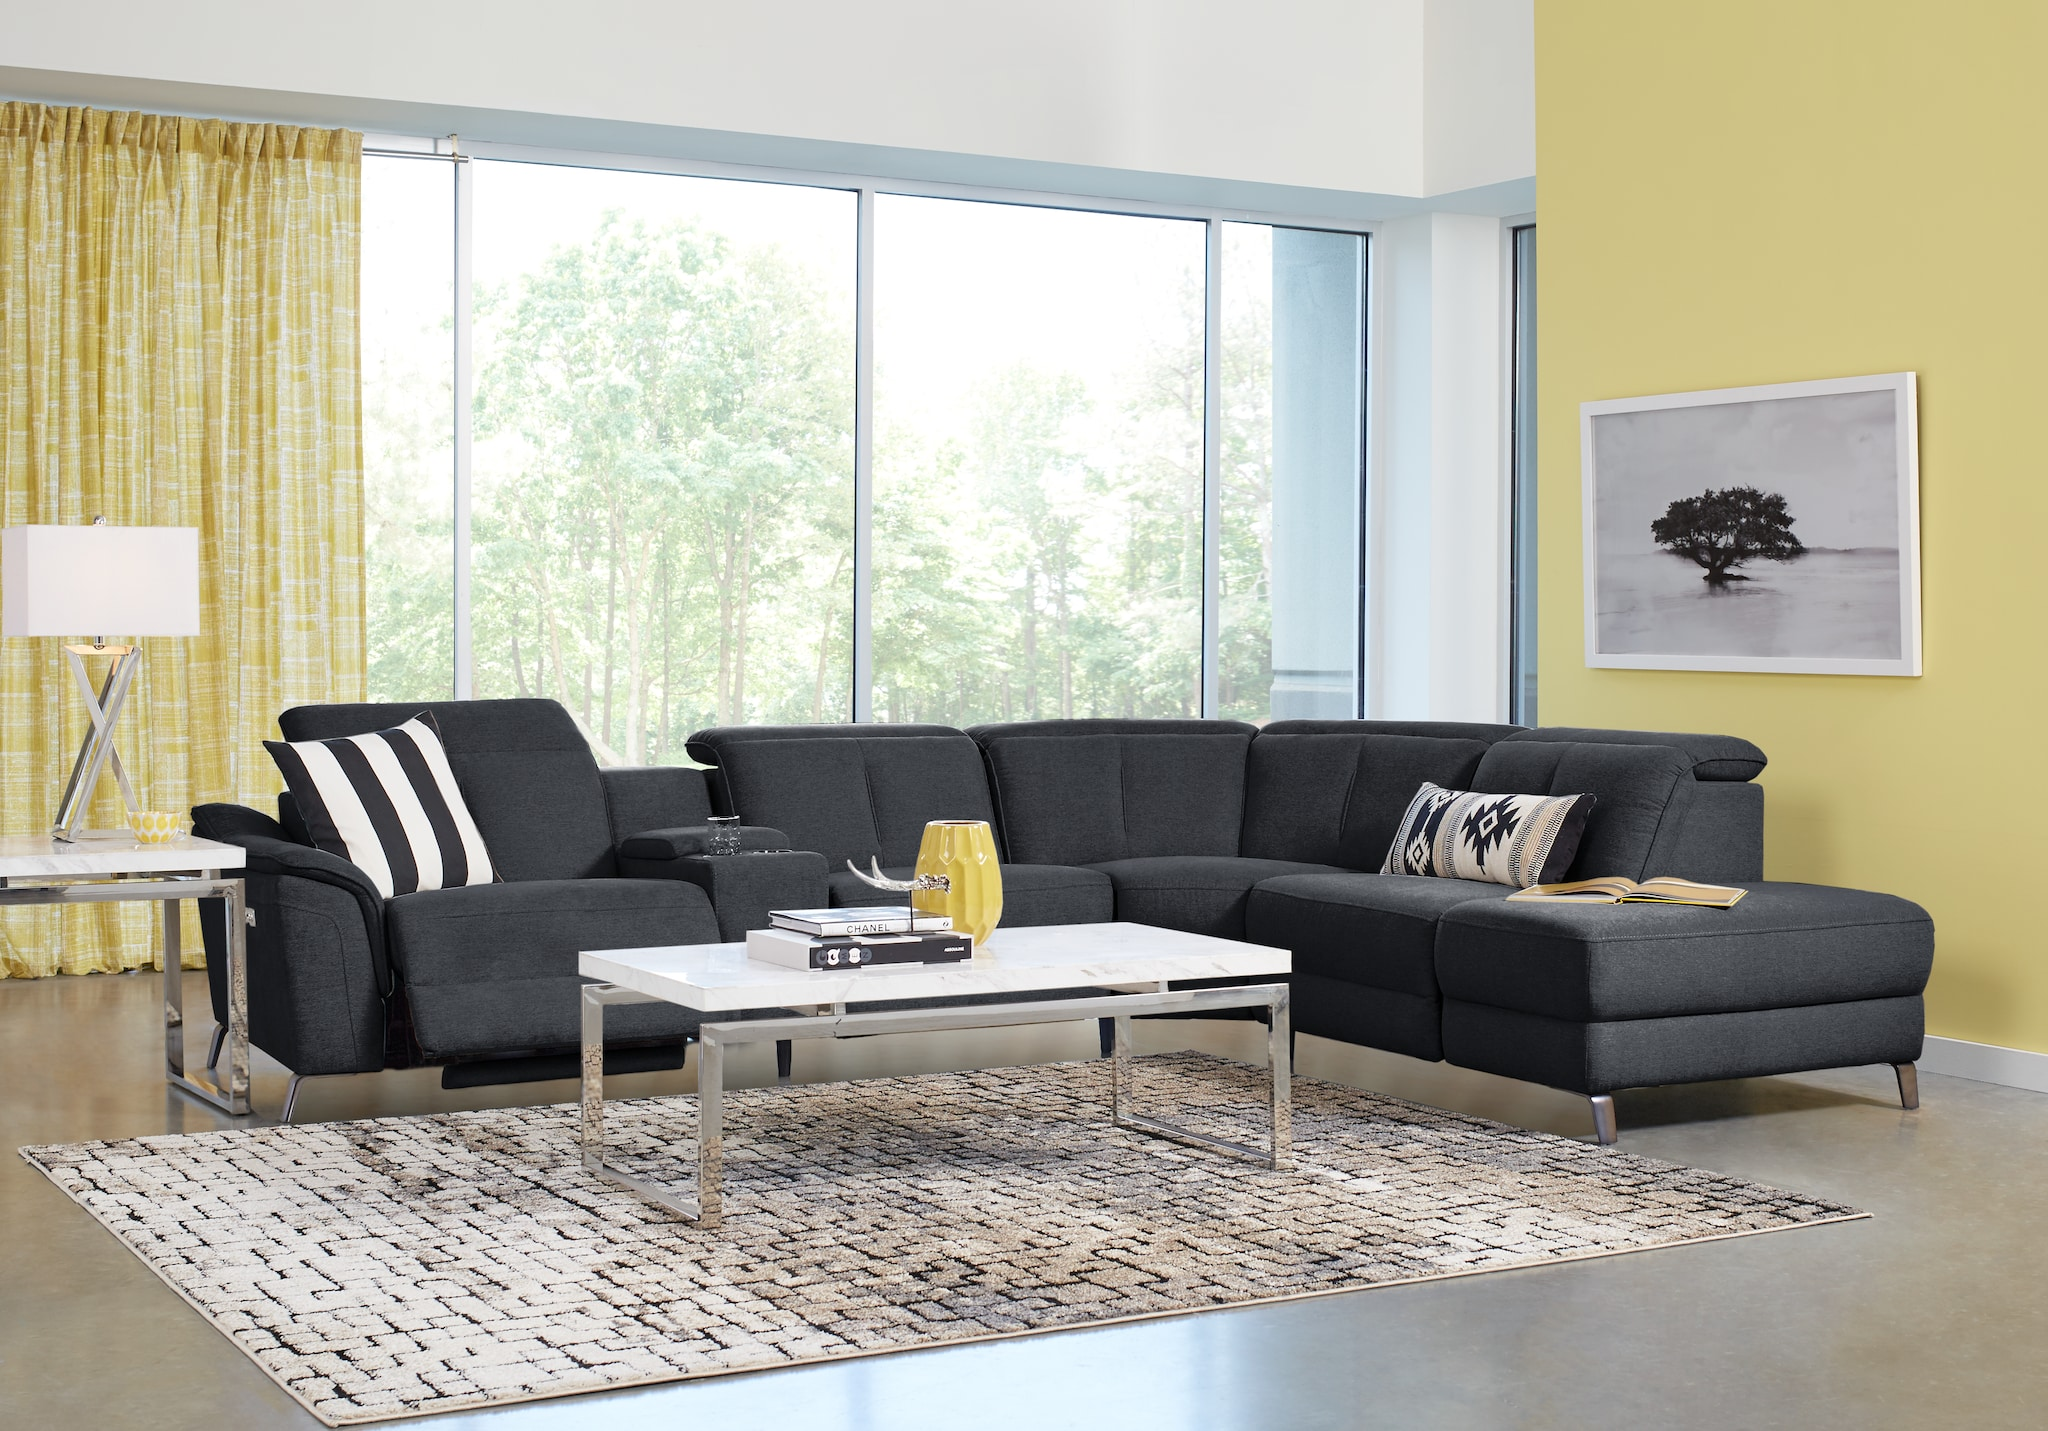 living room sets suites furniture collections turano midnight laf sofia vergara power plus reclining sectional ave six piece fabric chair and accent table set now next